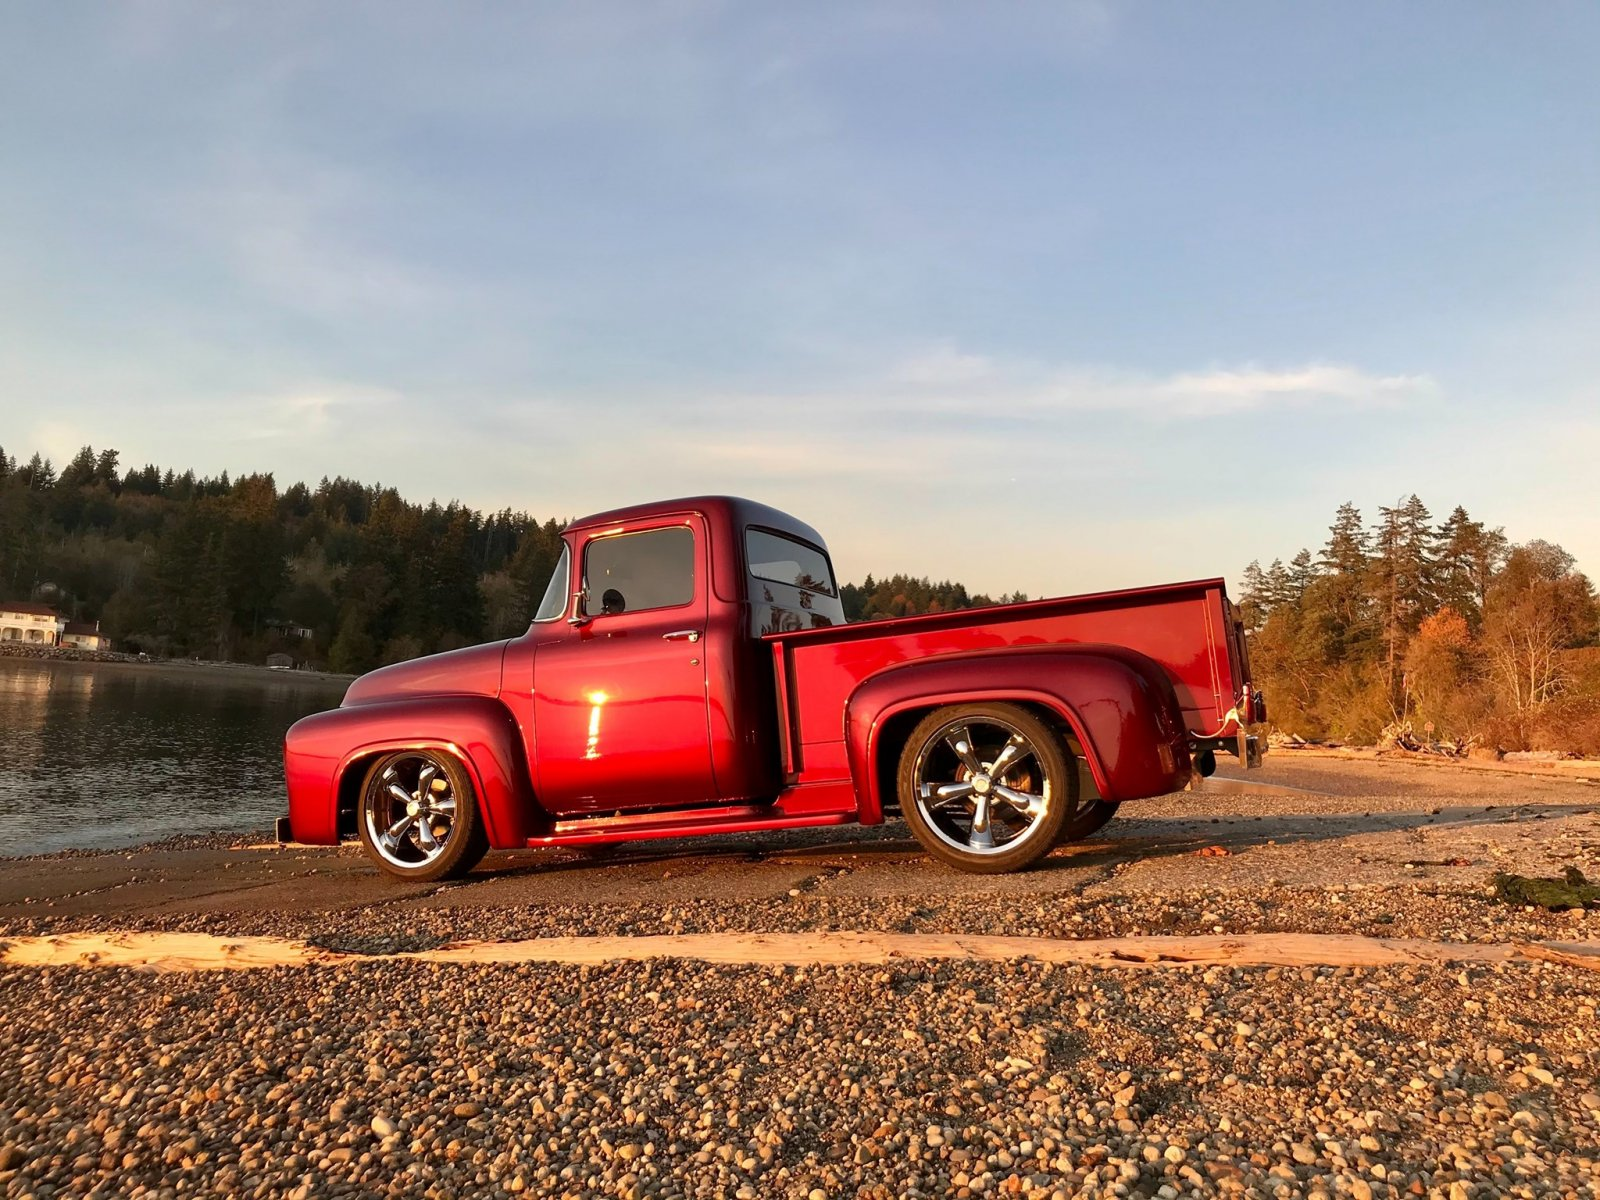 1956 Ford F100 Pickup Truck Candy Apple Red 3.jpg